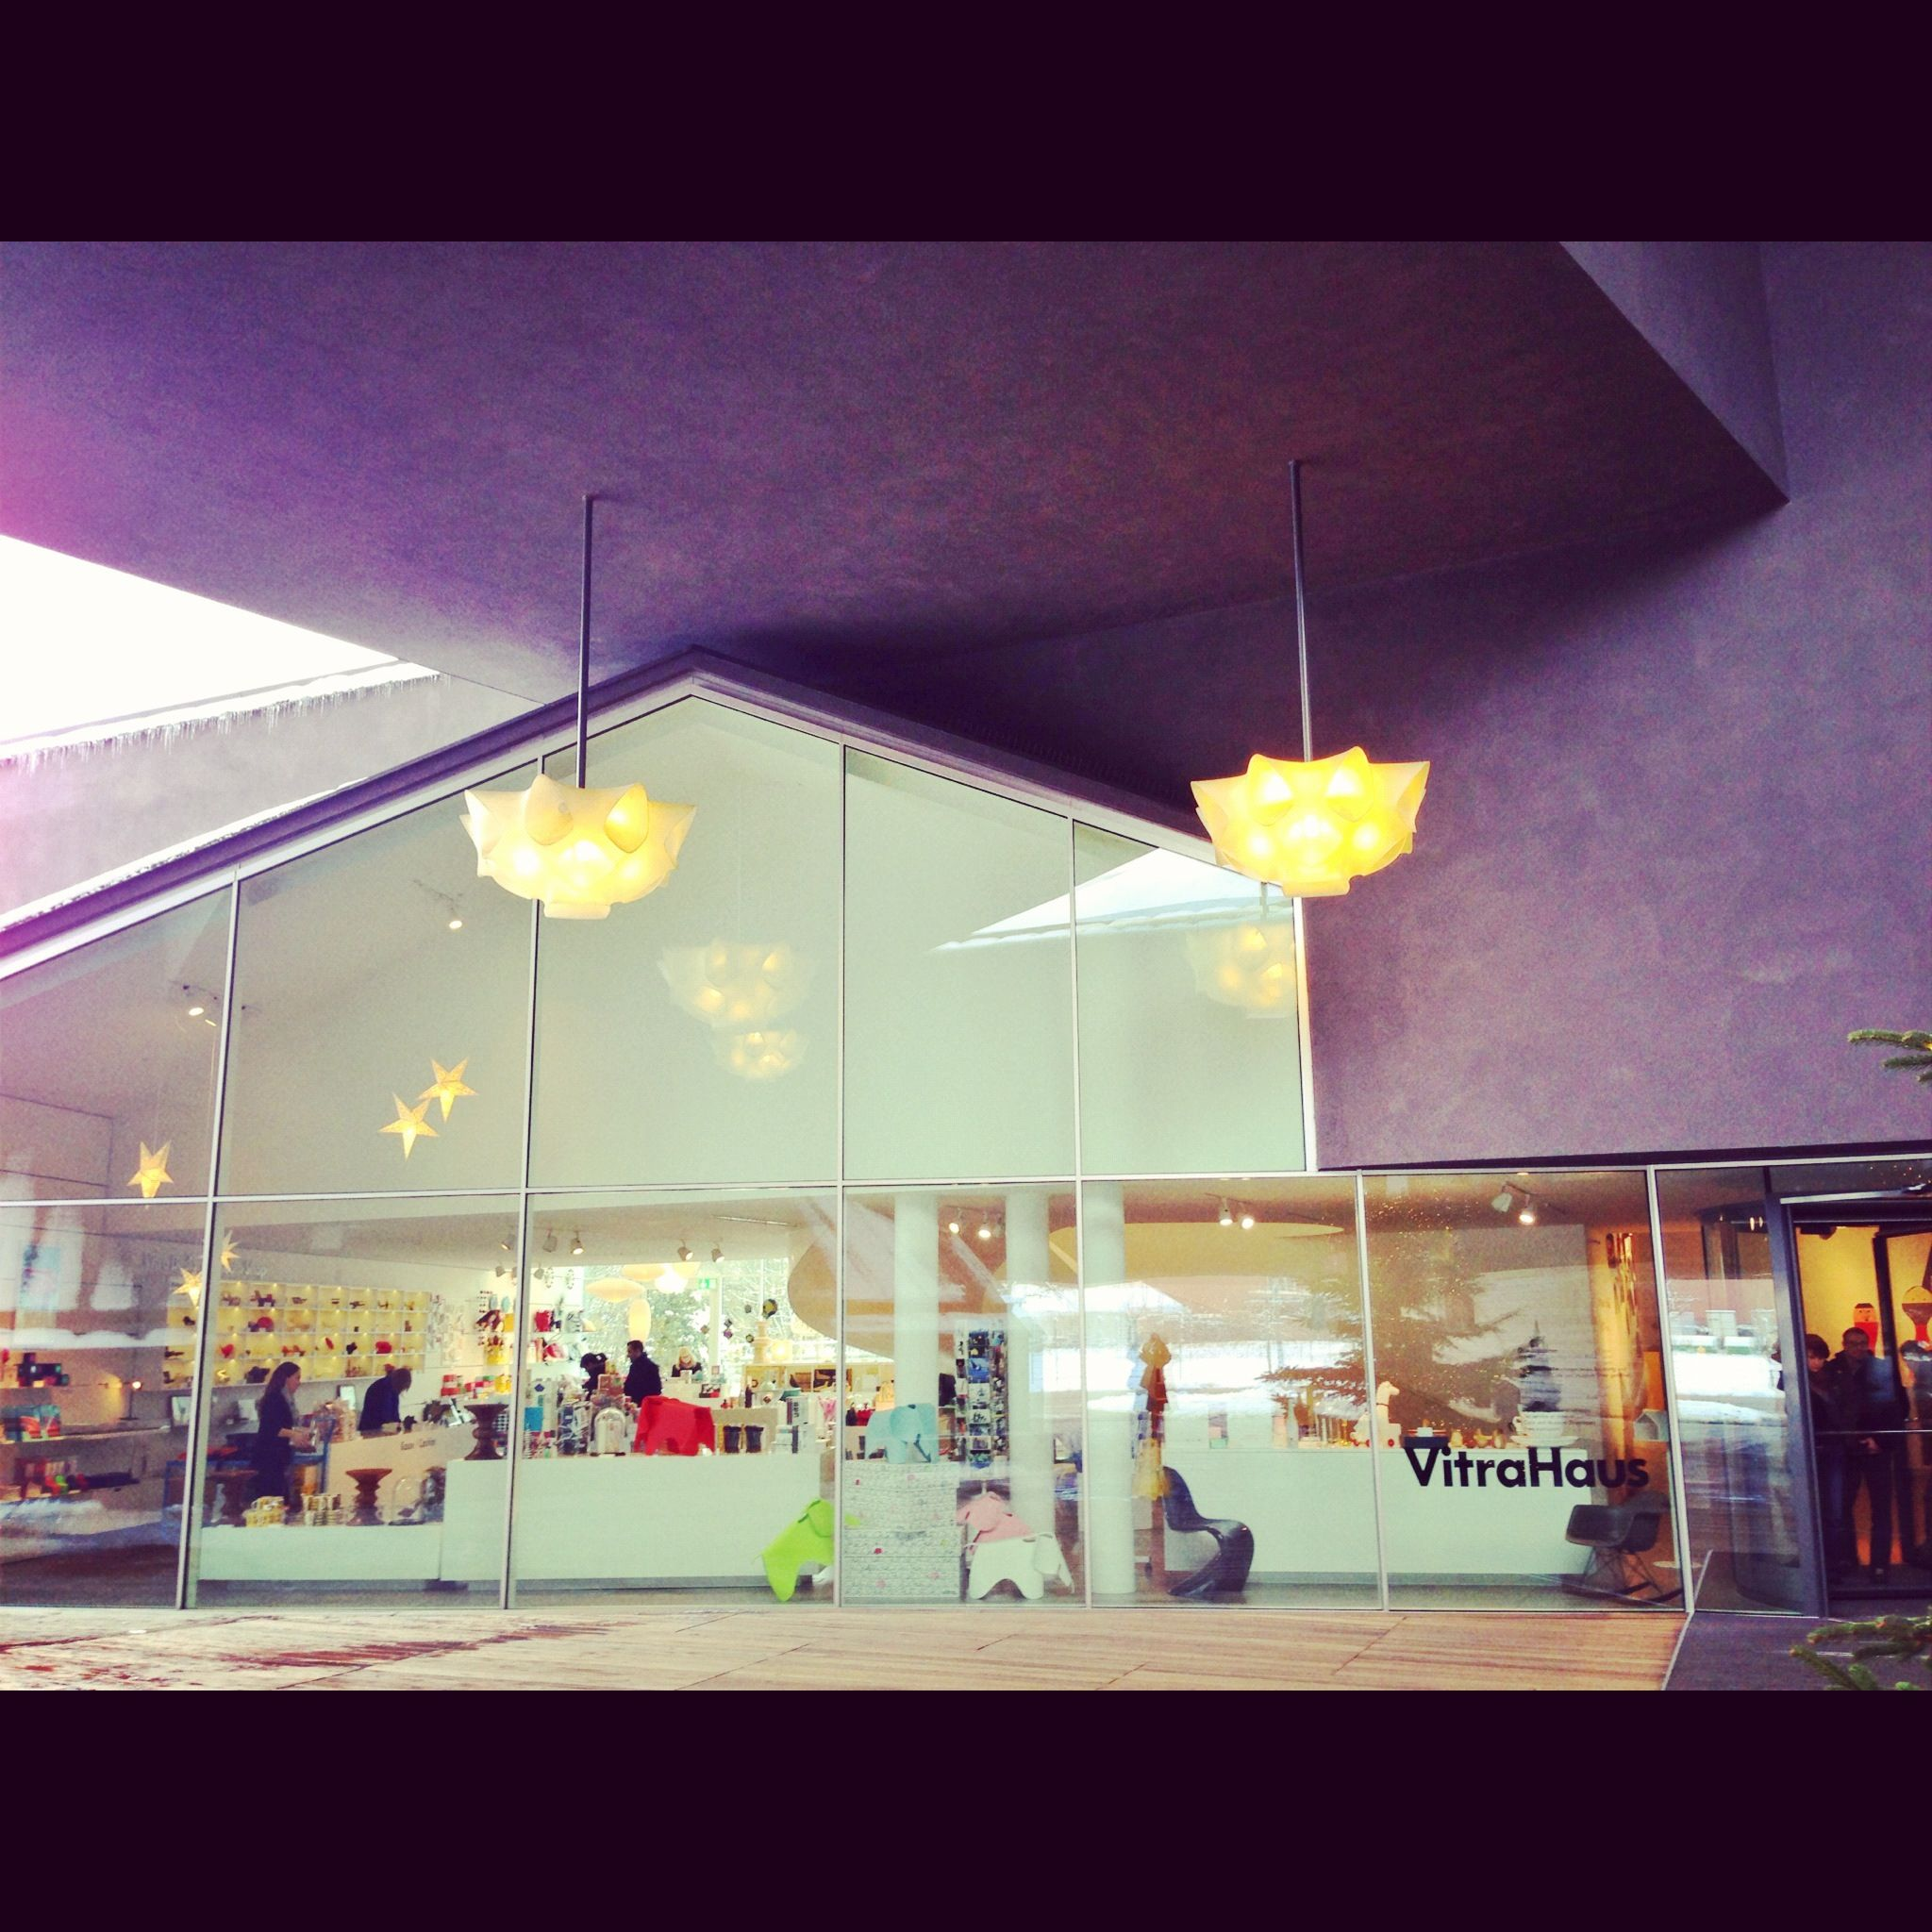 Our visit to Vitra Museum